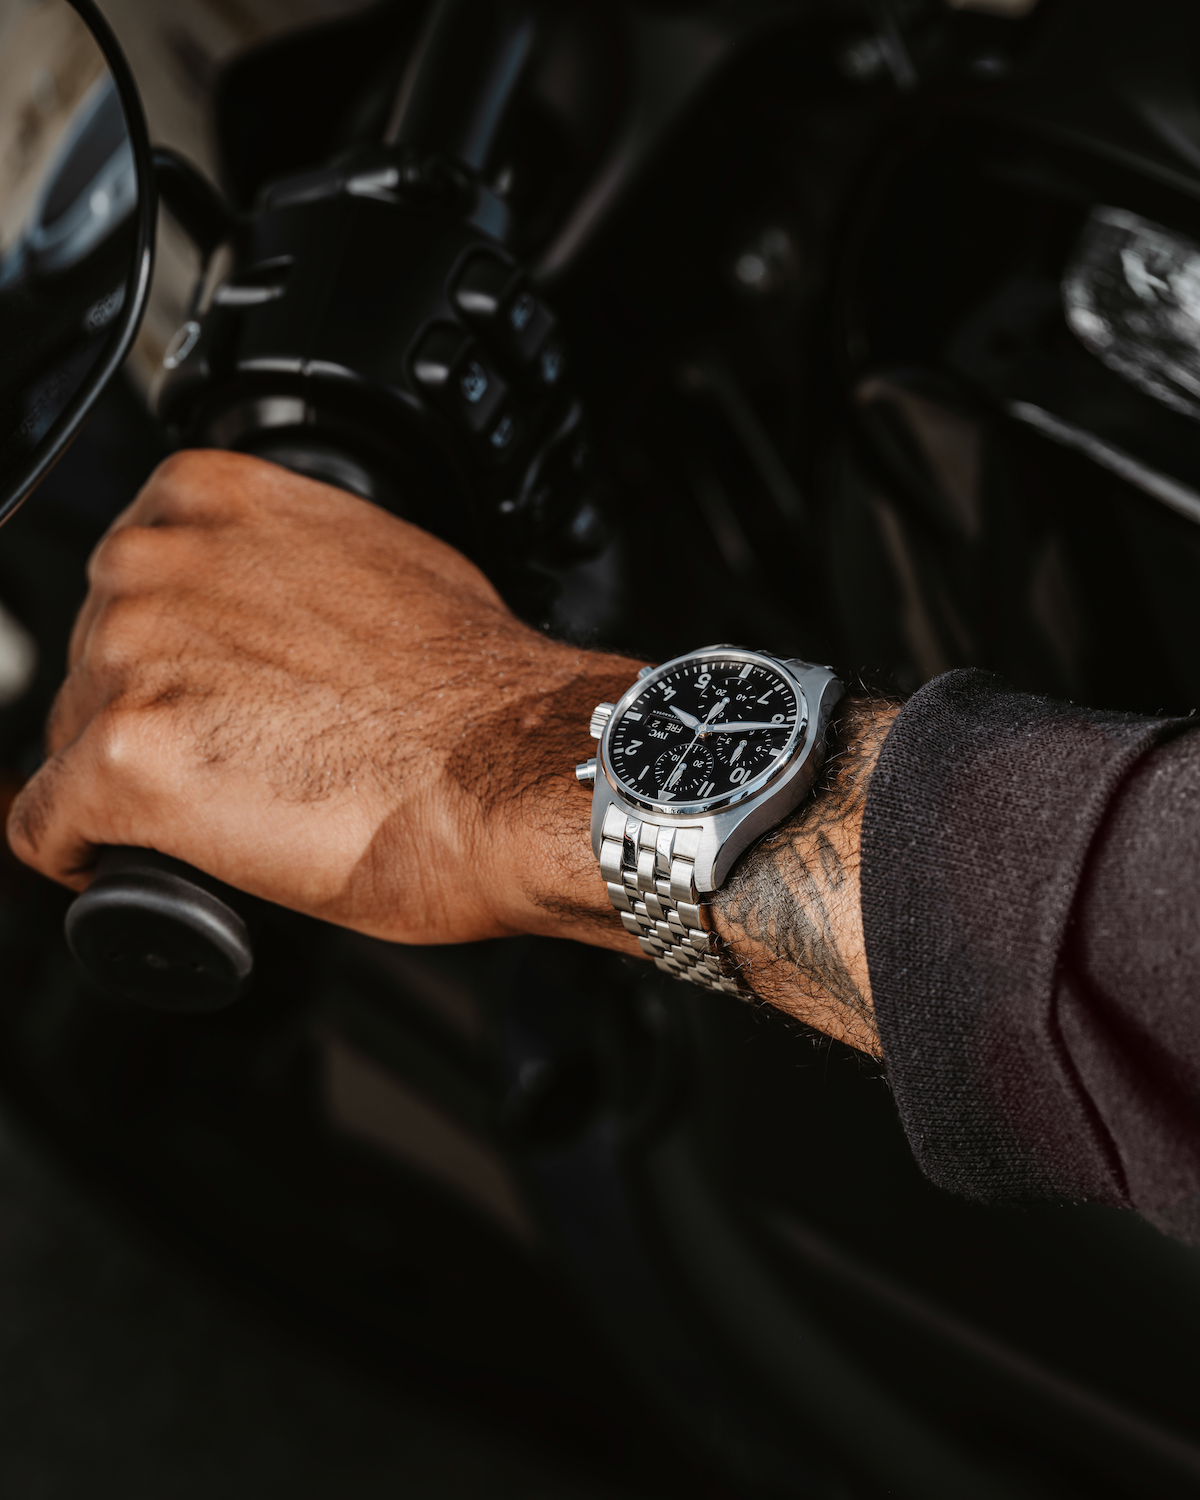 The C.03 collaborative Pilot's Watch Chronograph with IWC